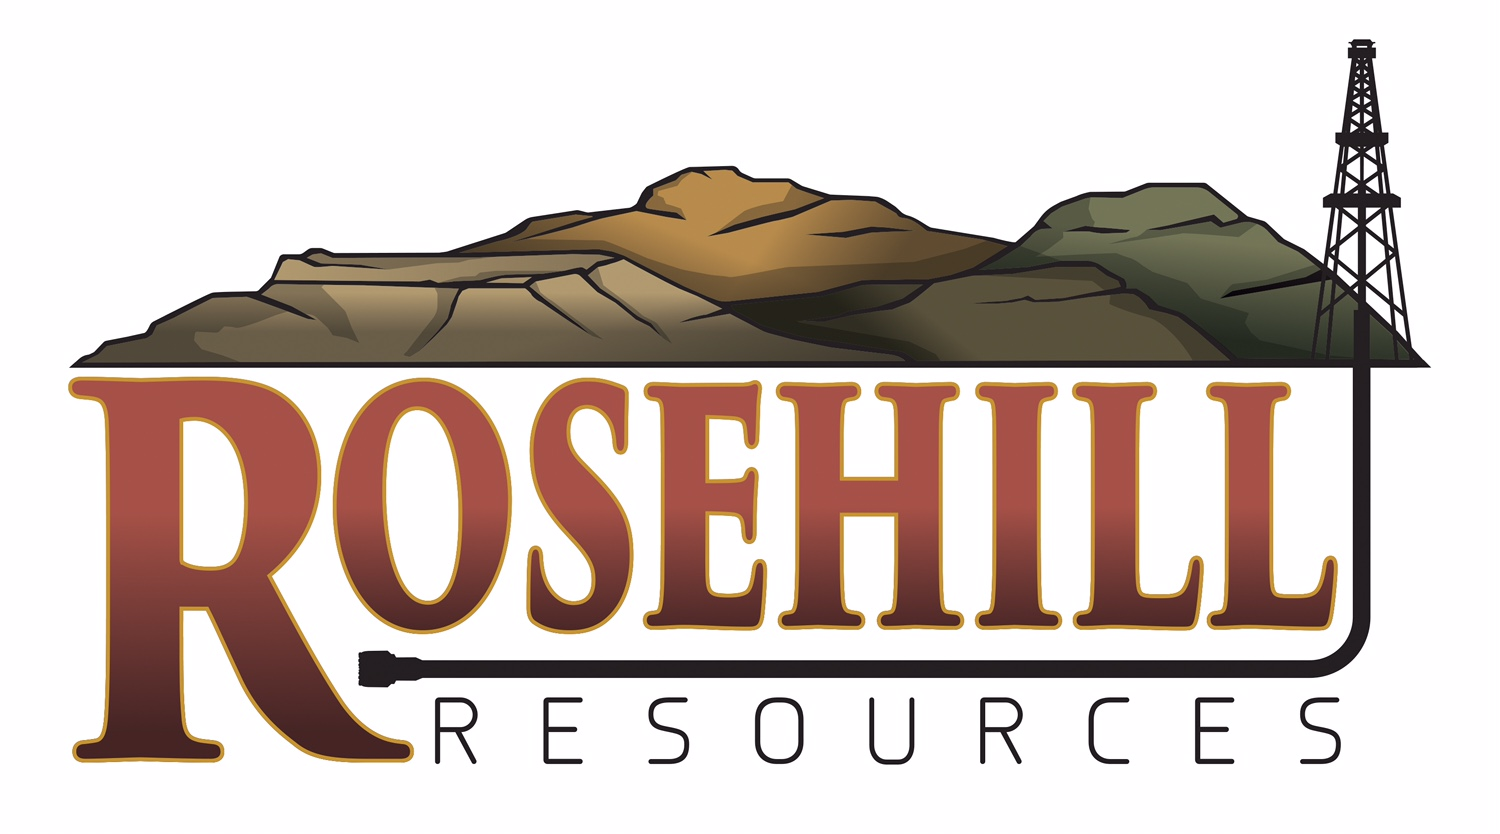 Rosehill Resources Inc. Announces Participation in Upcoming Investor Conferences